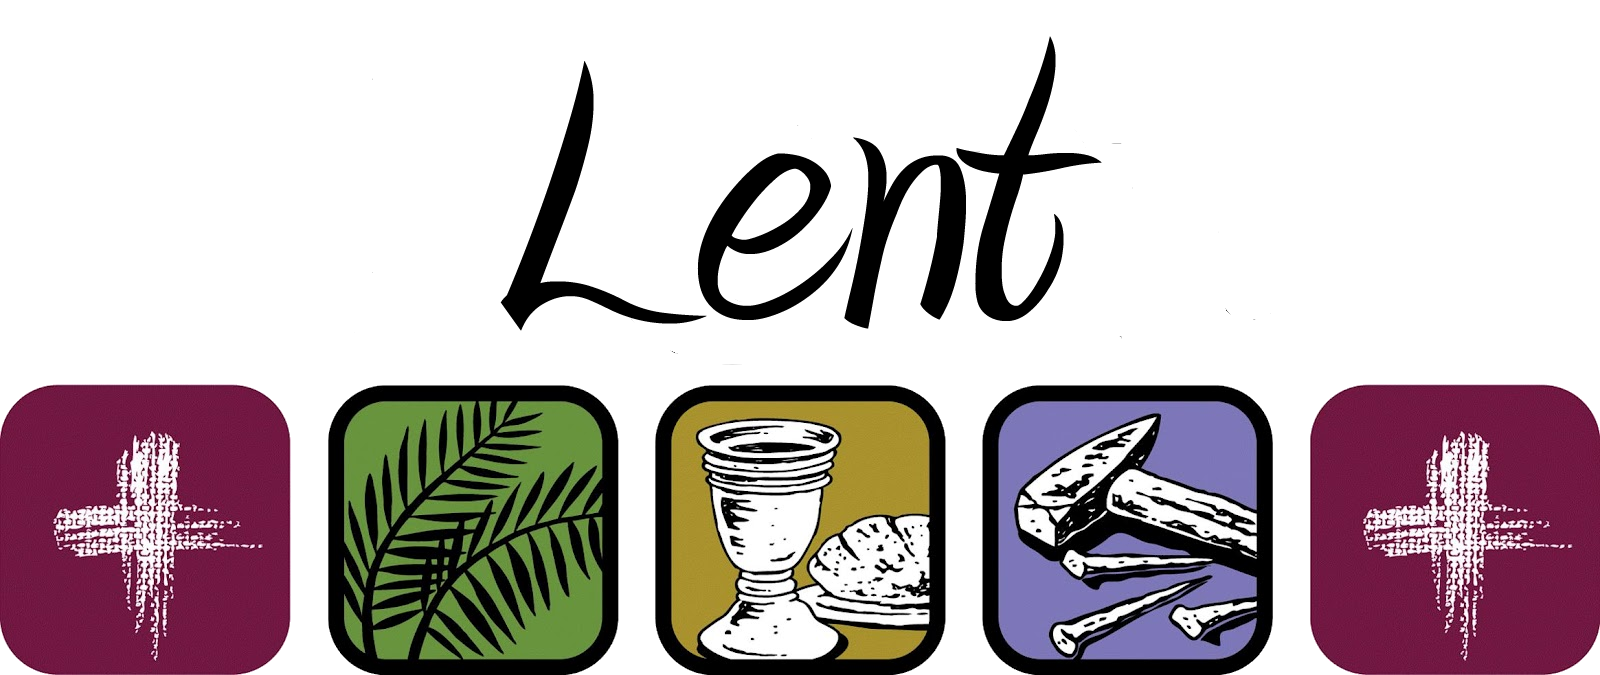 St. Joseph Catholic Church: Welcome to St. Joseph Catholic Church!.